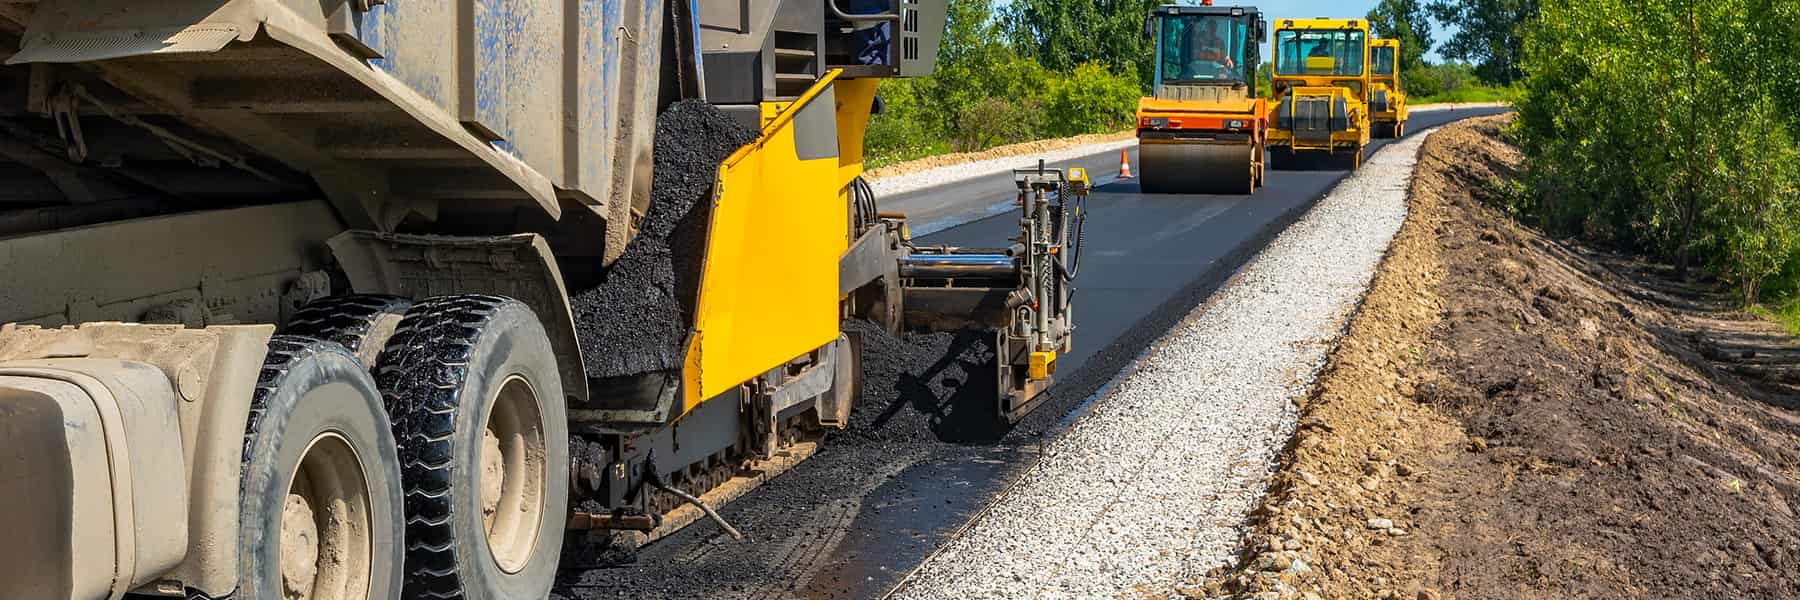 A yellow dump truck pours asphalt for a roller truck paving the road.